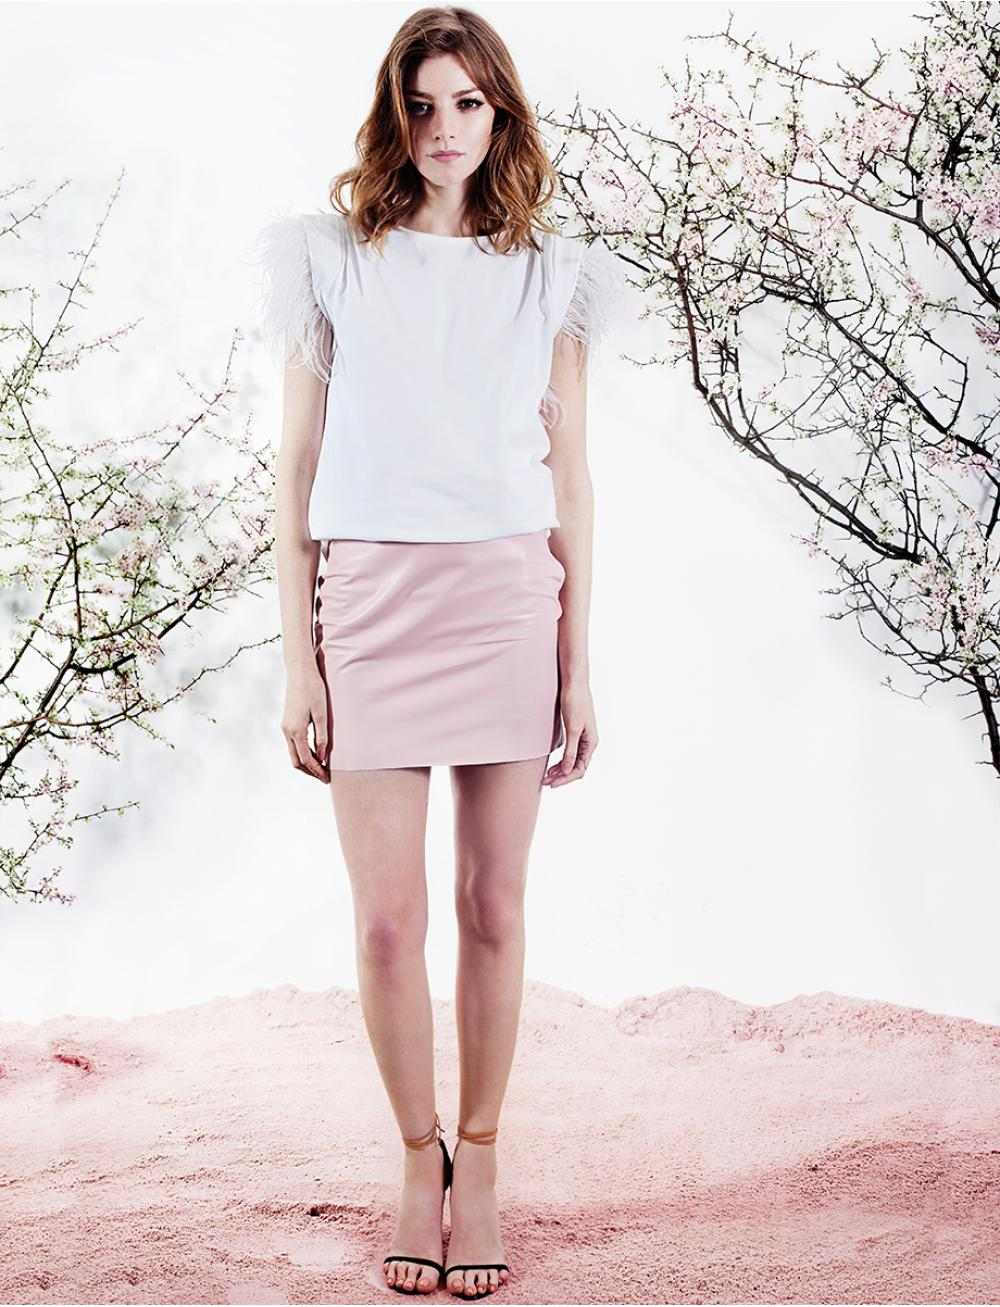 Fly Away Top - White by Manurí on curated-crowd.com